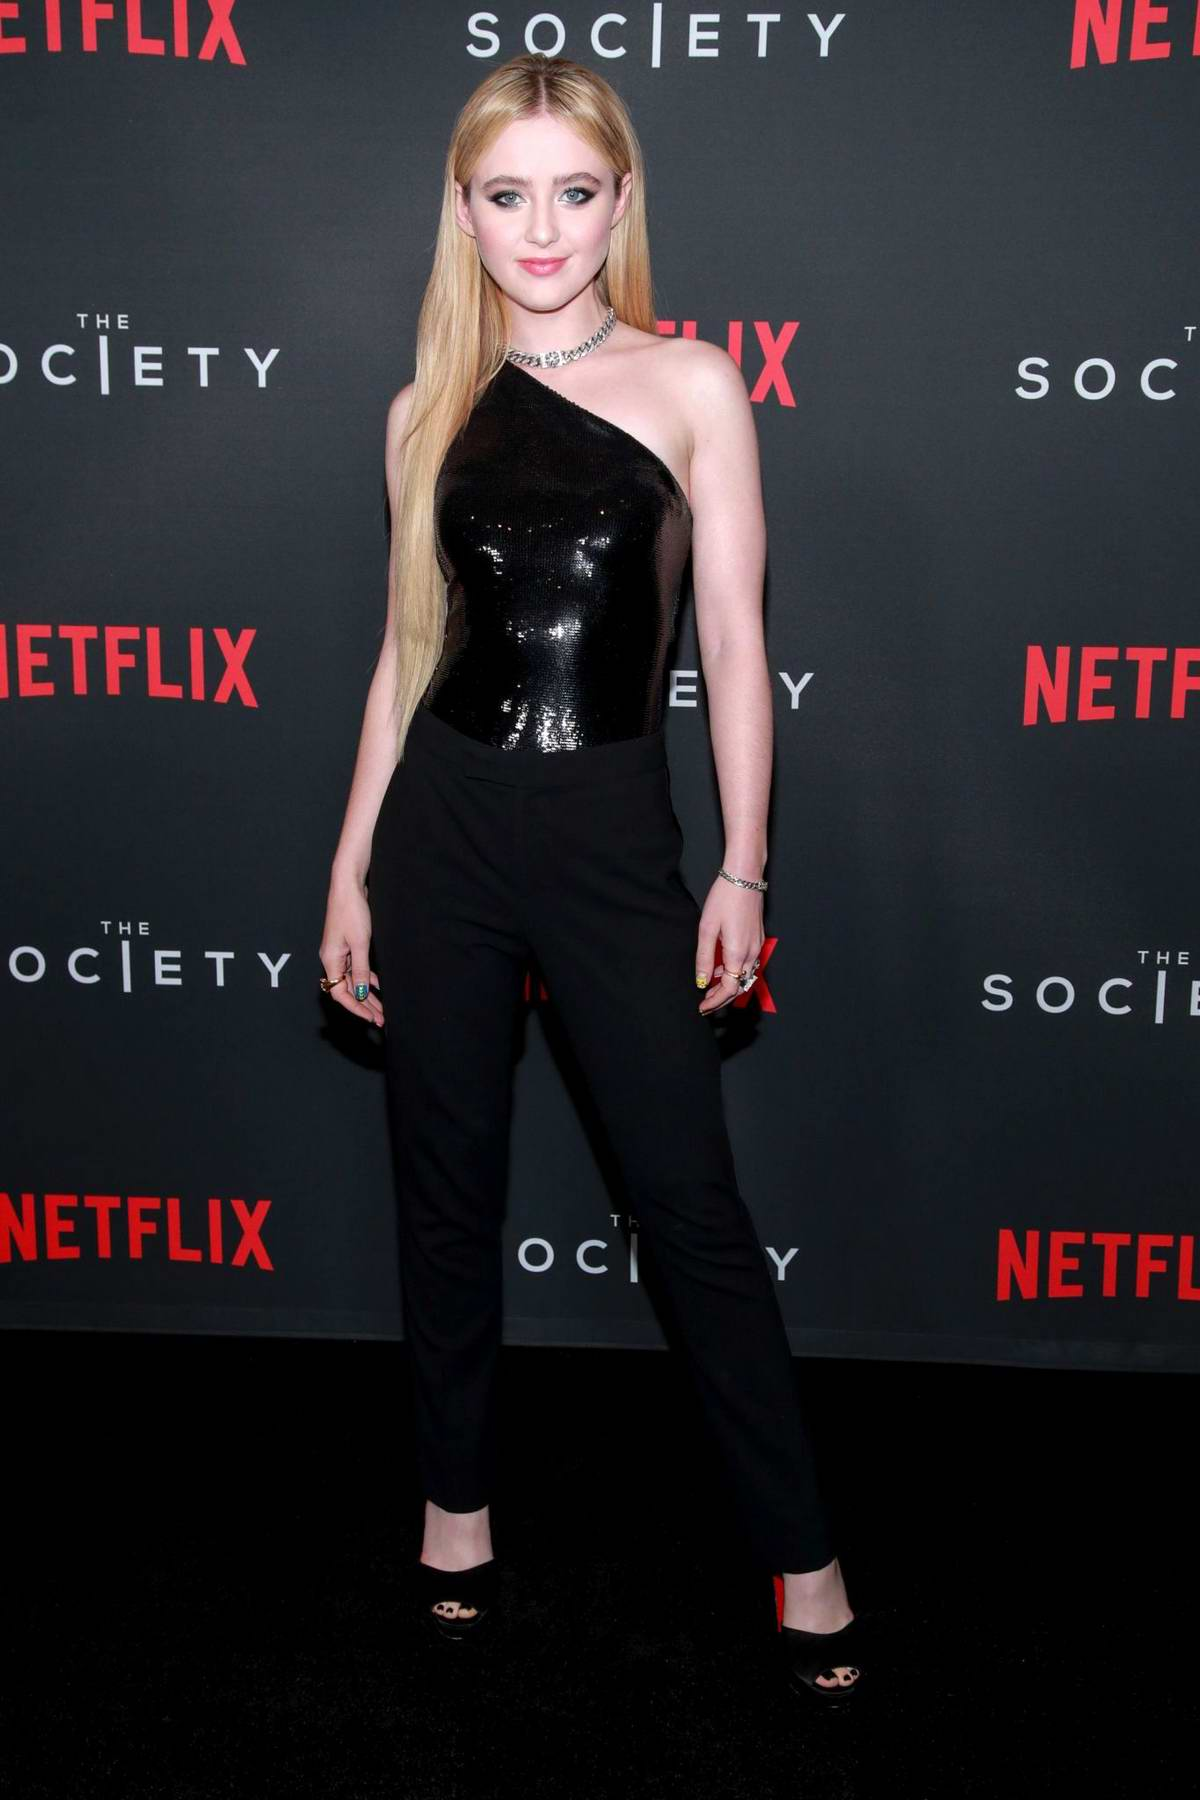 Kathryn Newton attends the special screening for Netflix's 'The Society' Season 1 at Regal Cinemas LA Live in Los Angeles